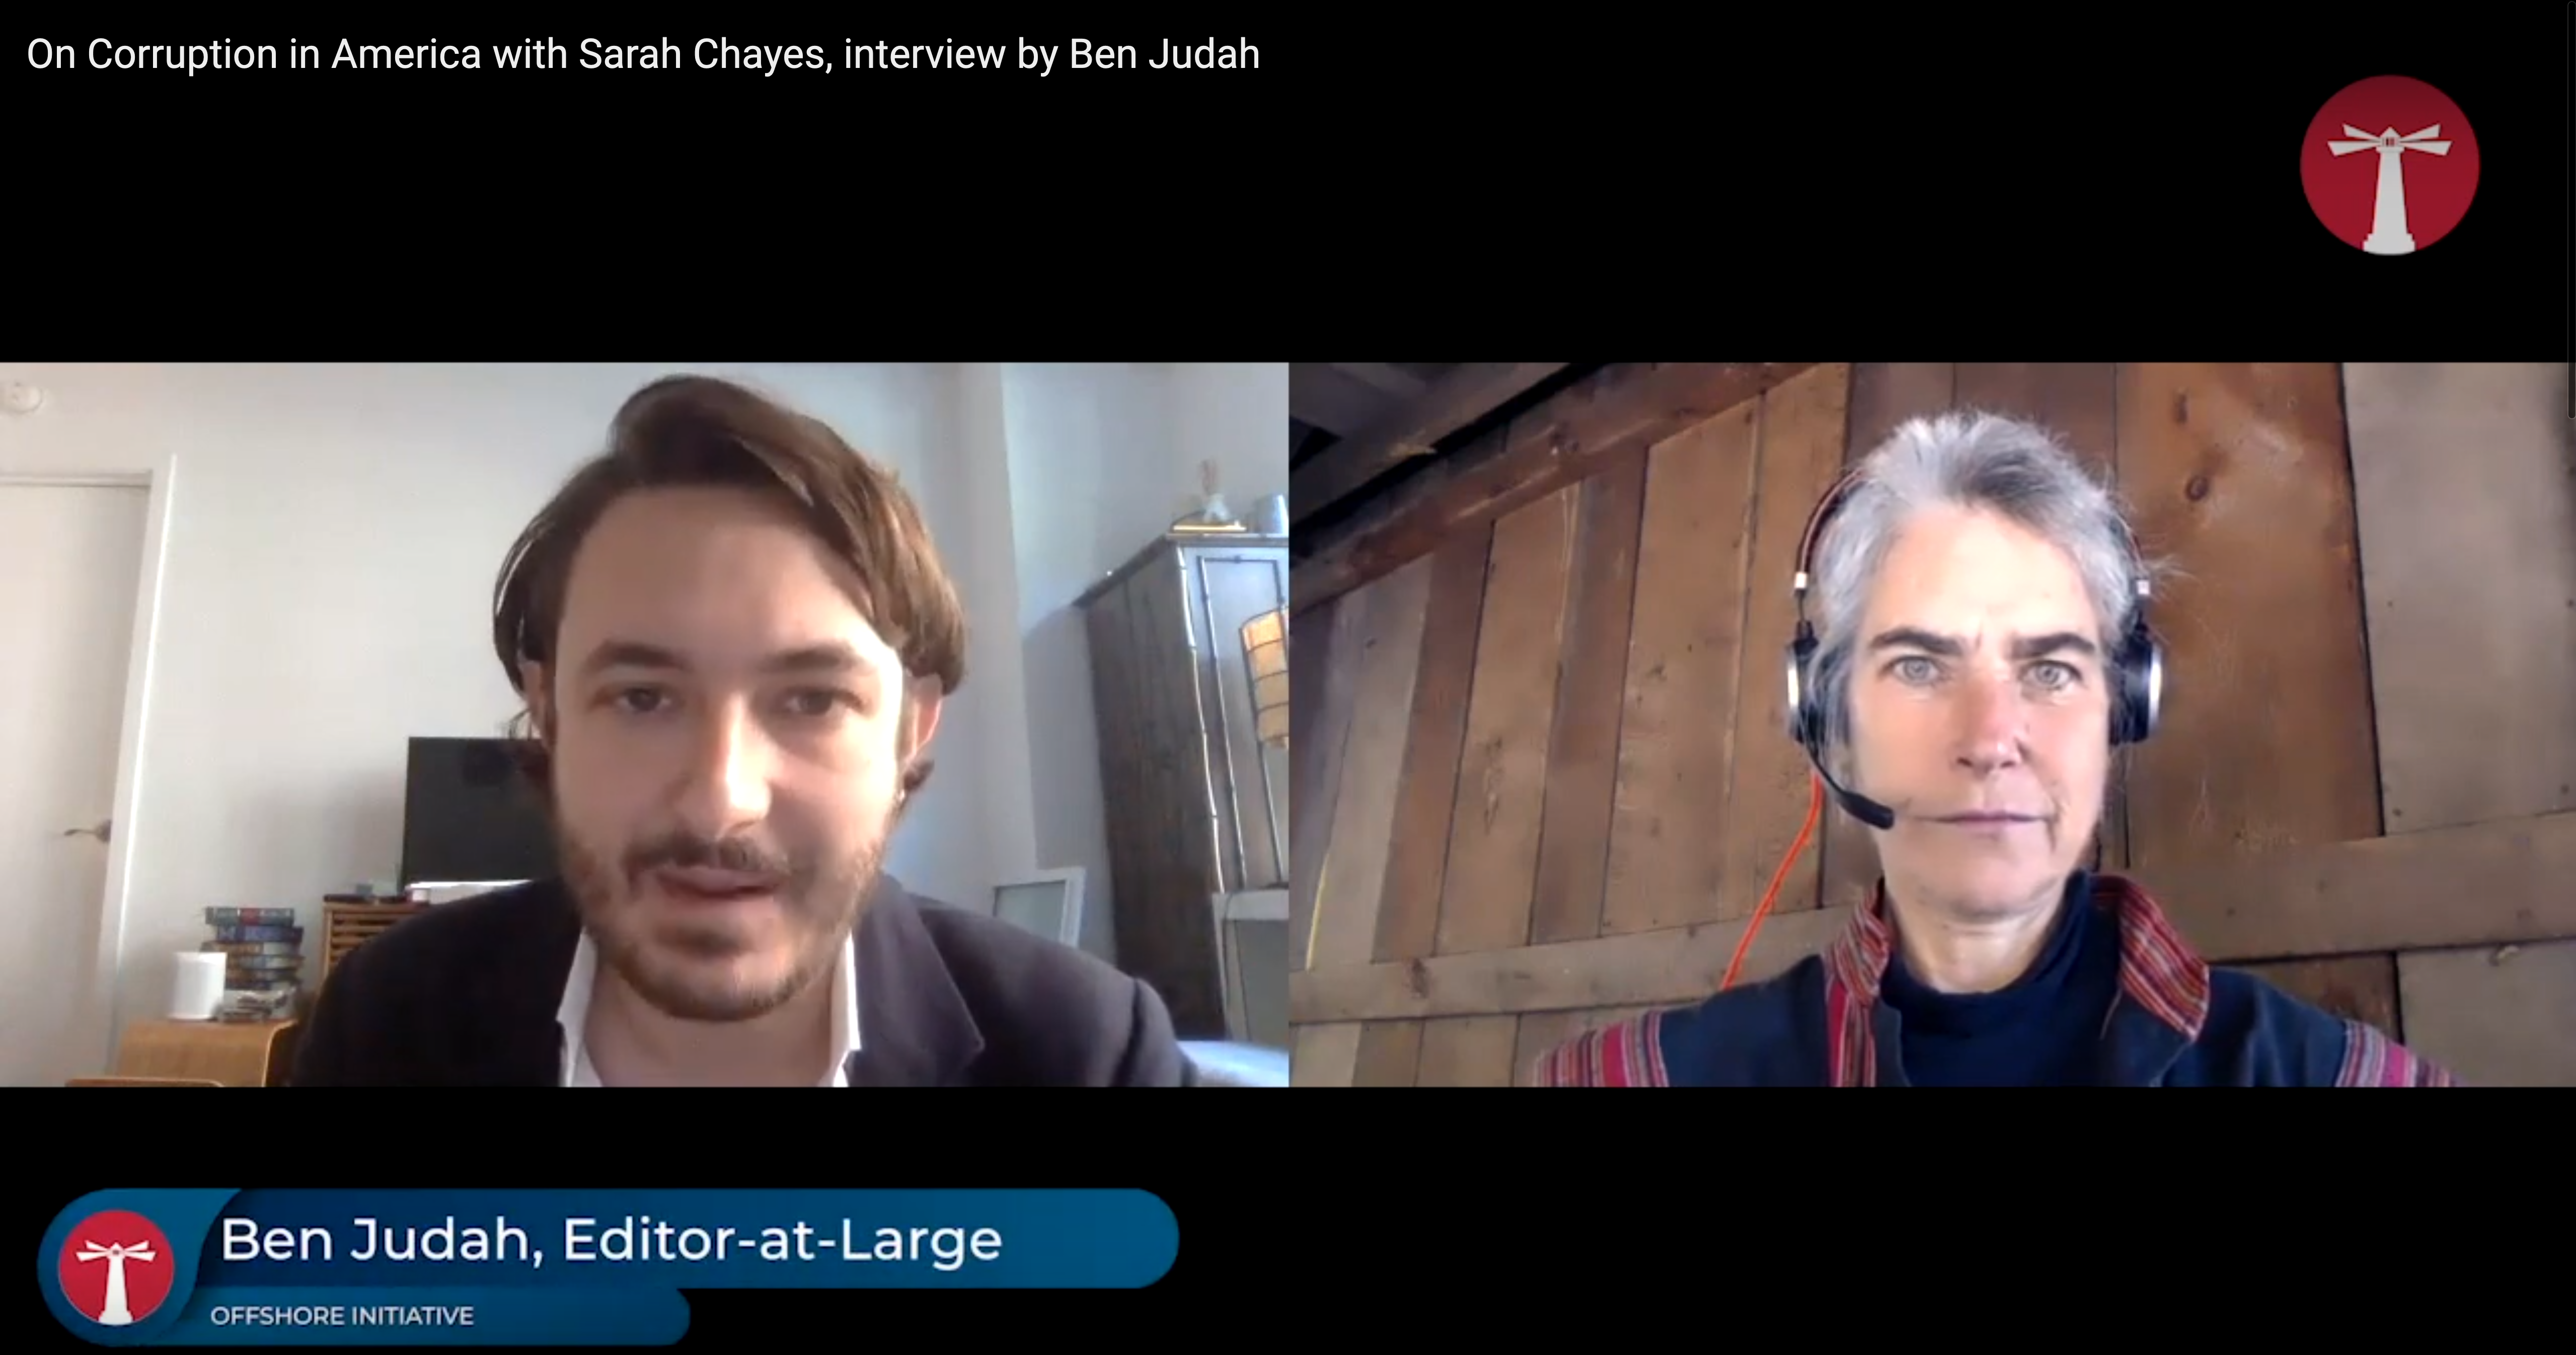 Chayes/Judah interview